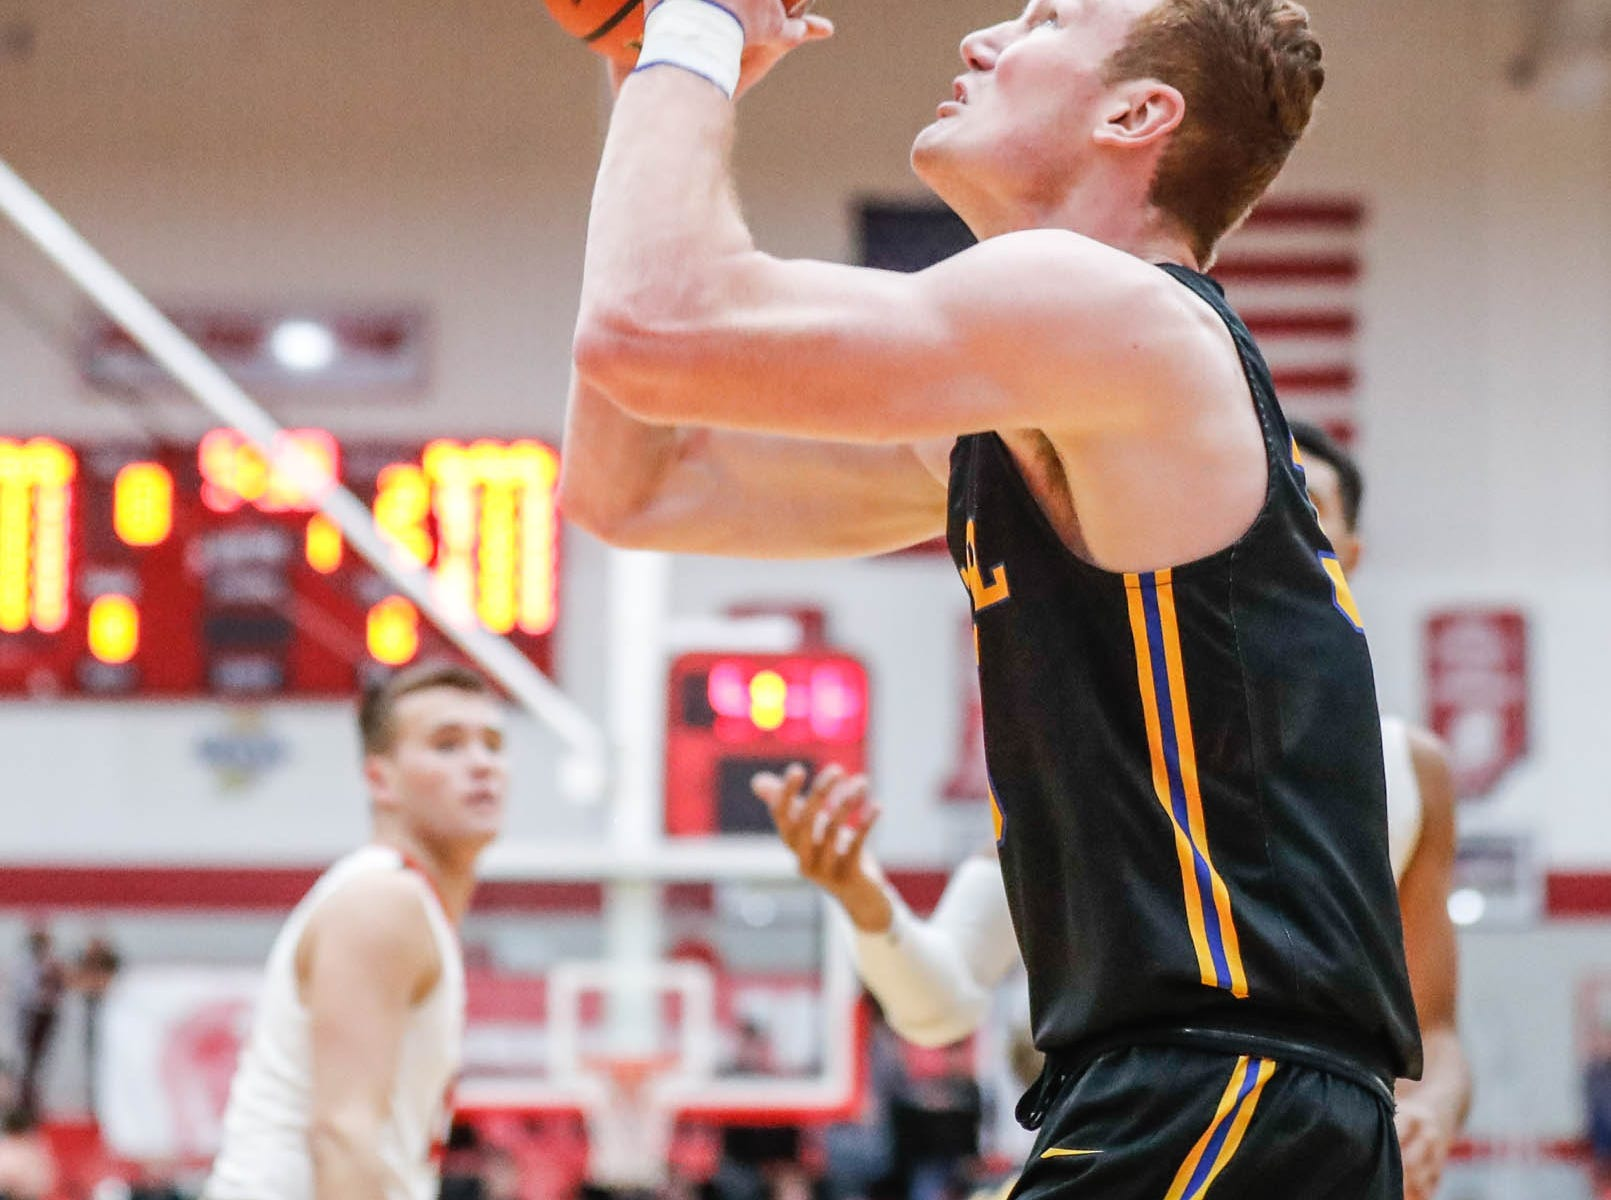 Carmel High School's John Michael Mulloy (33) shoots for the hoop during a game between Center Grove High School and Carmel High School, held at Center Grove on on Friday, Jan. 4, 2019.